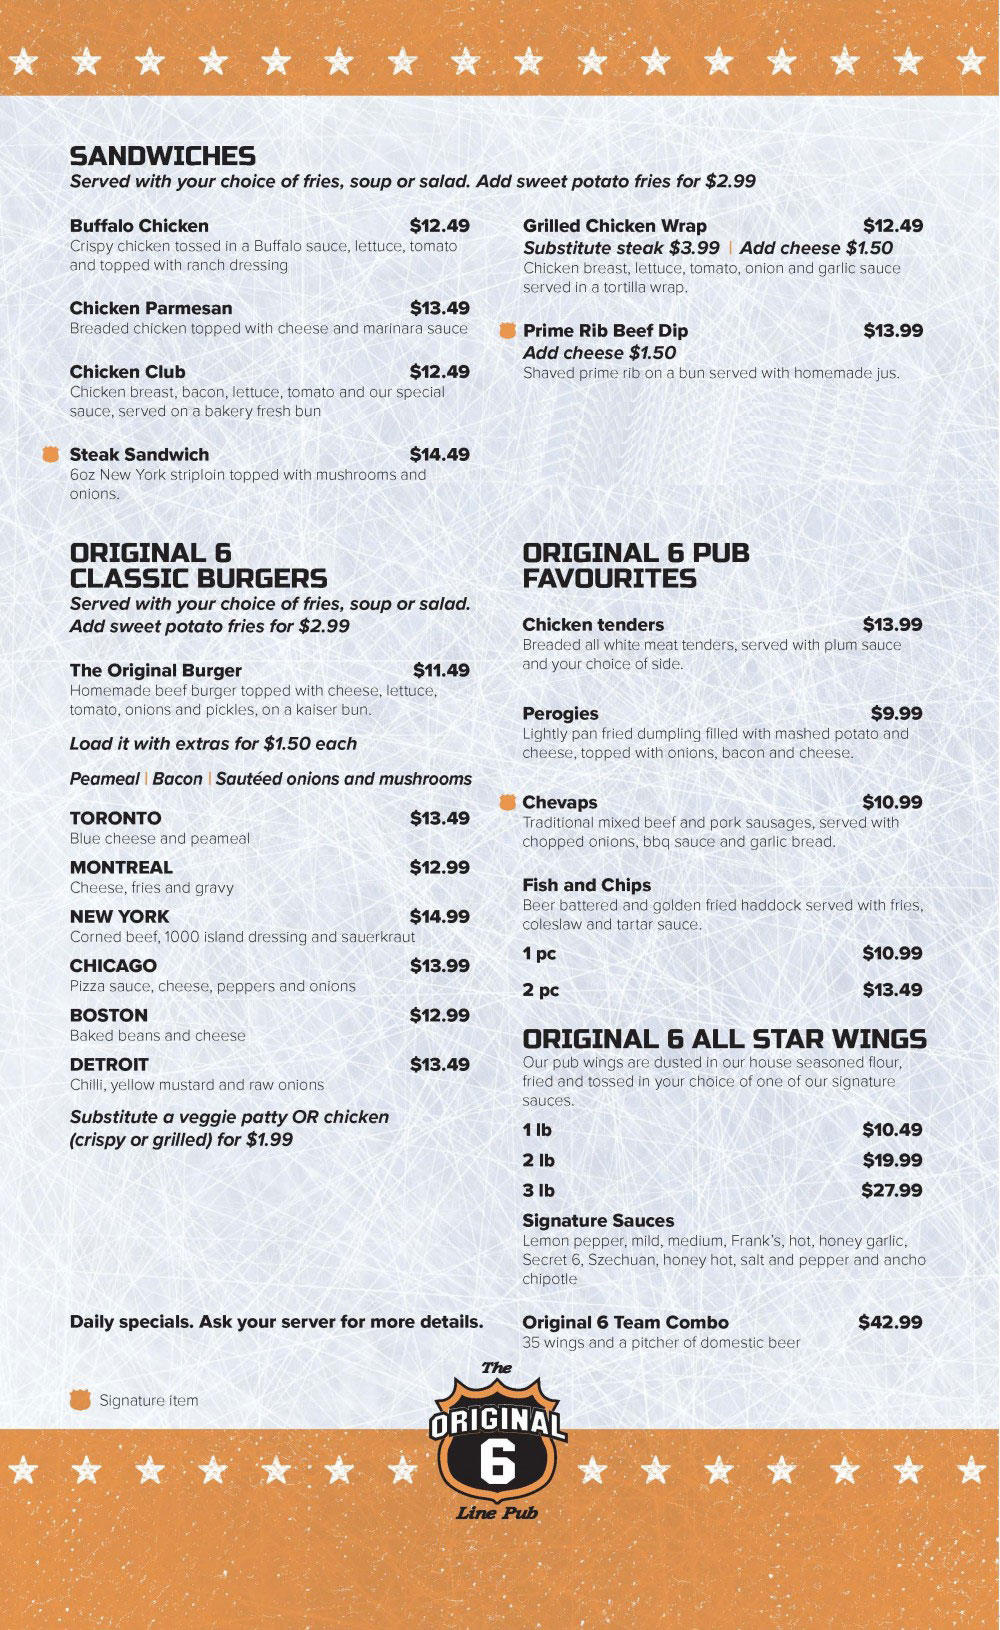 The Orginal 6th line Pub menu page 2